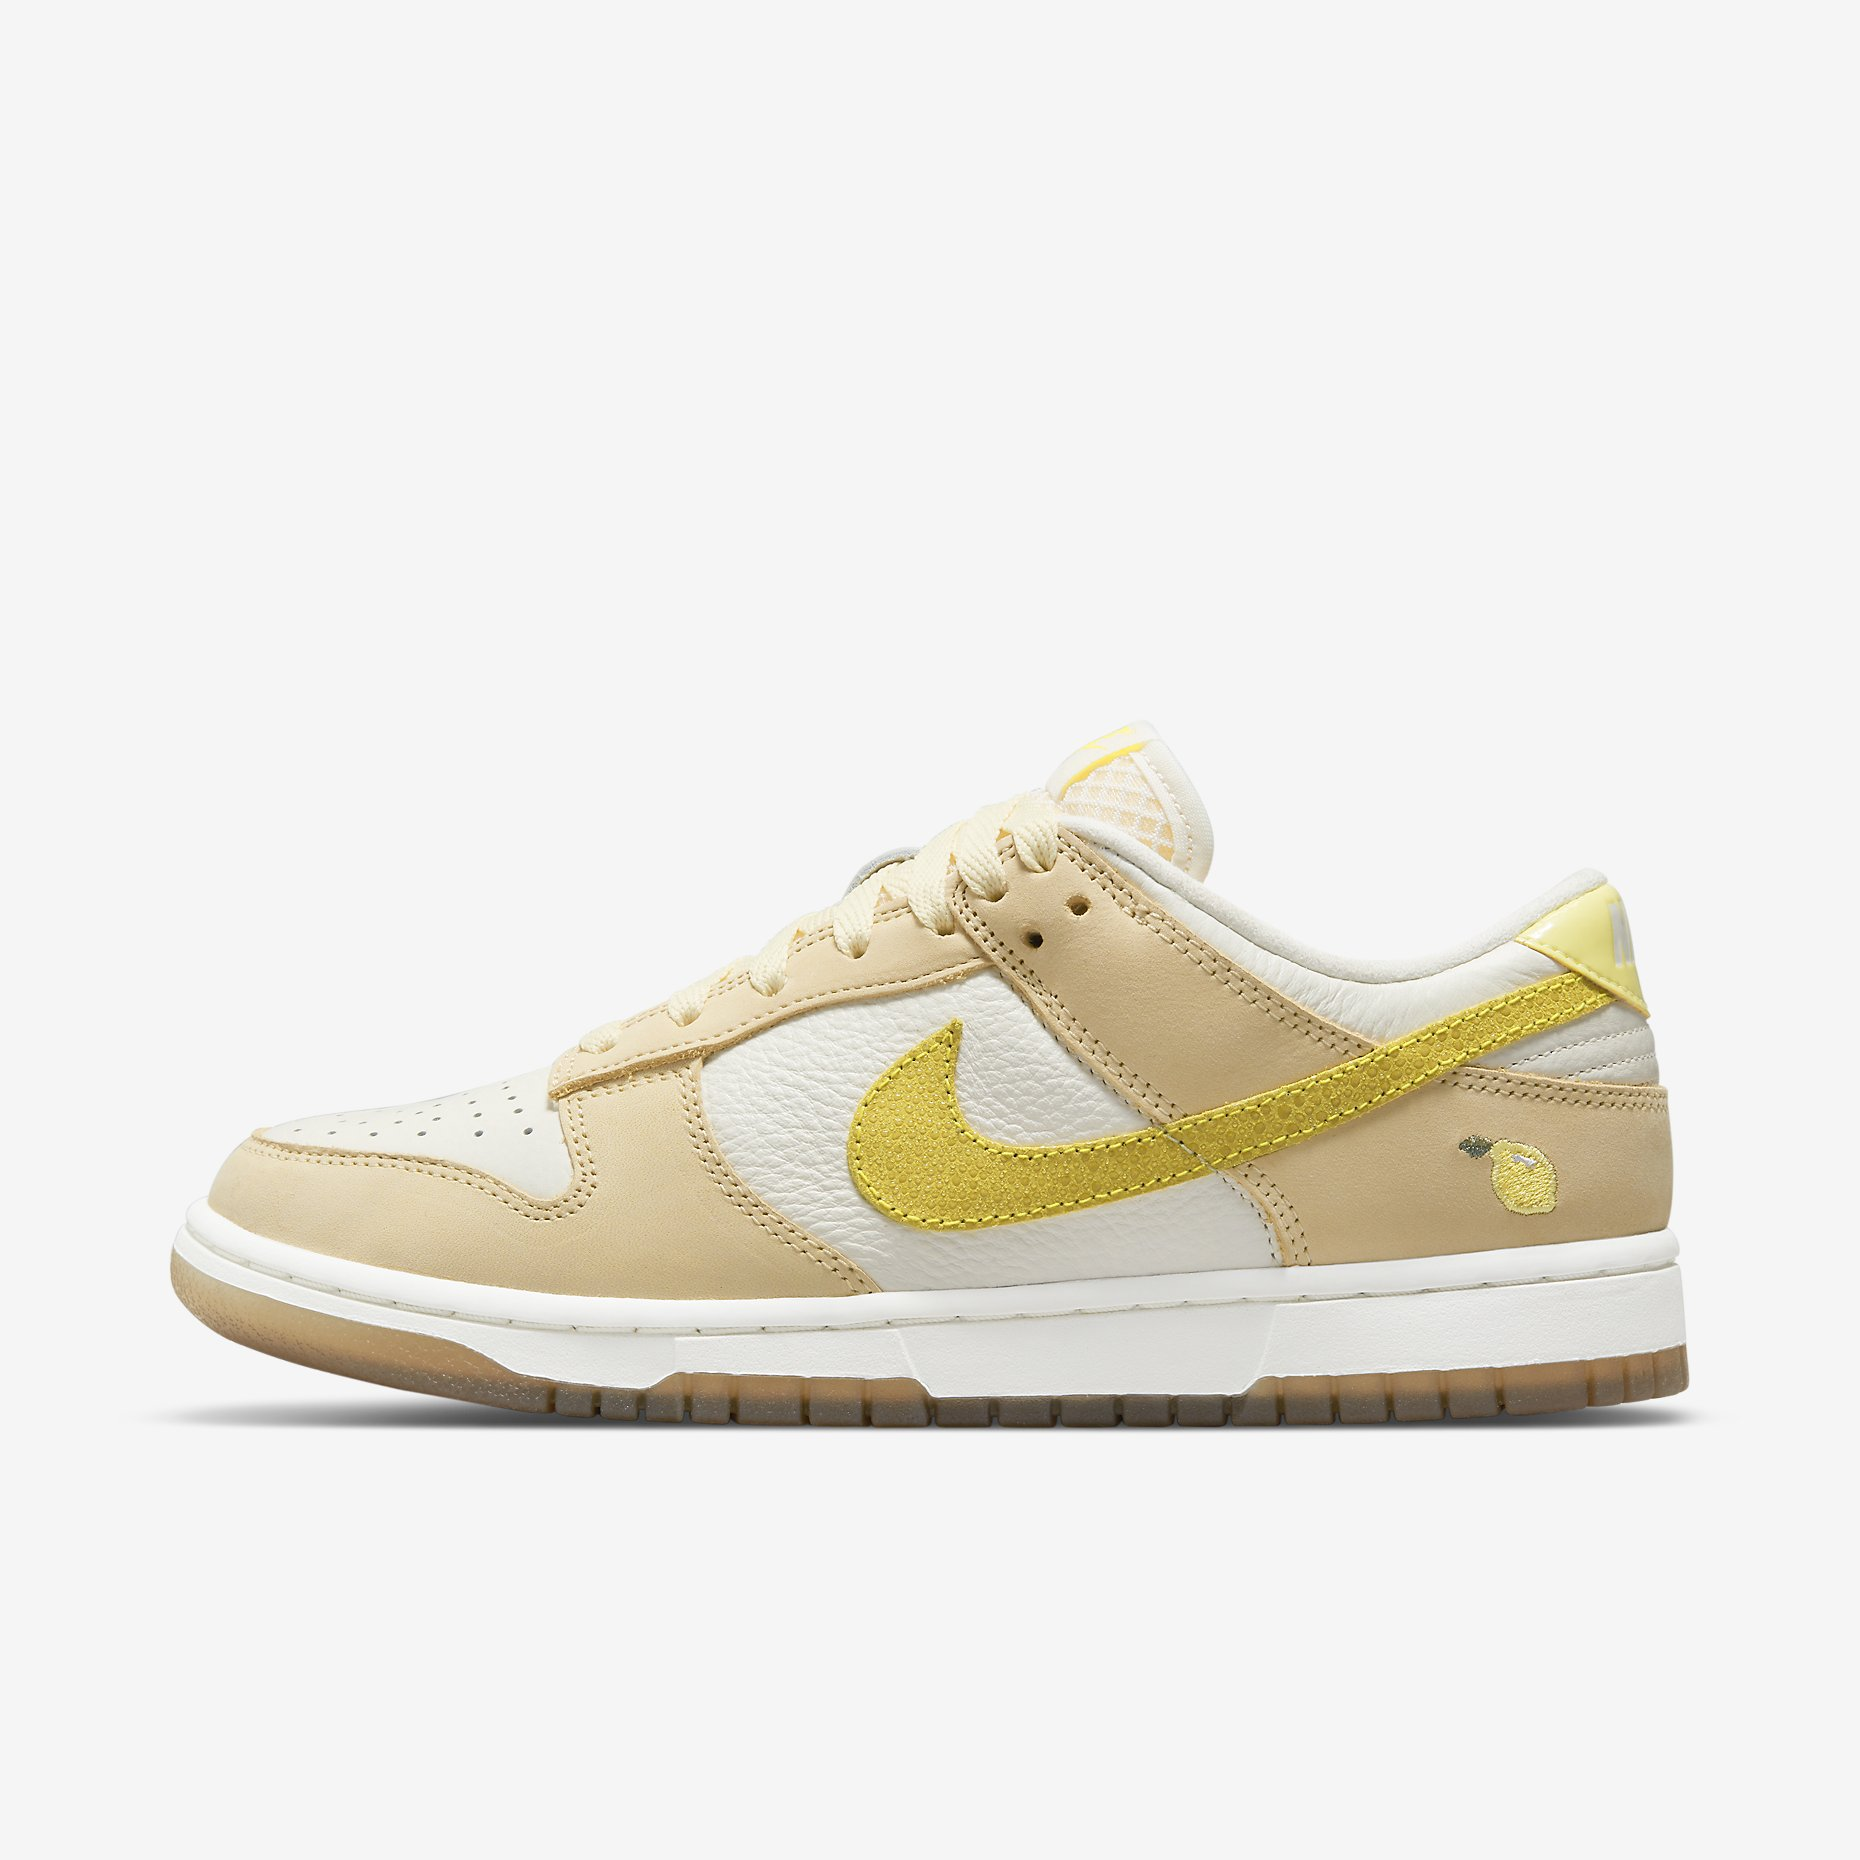 Women's Nike Dunk Low 'Lemon Drop'}